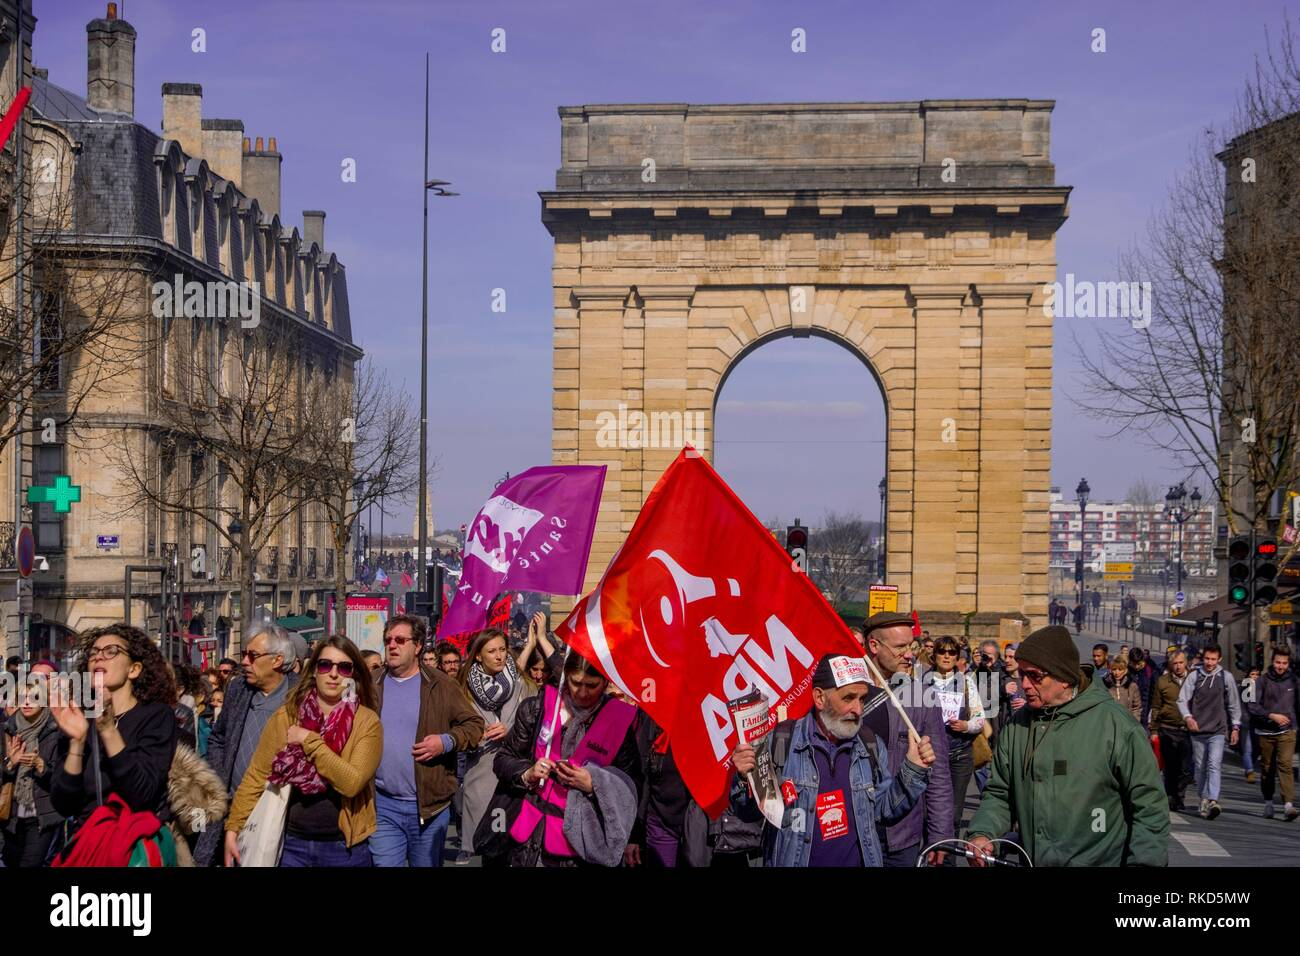 France, Nouvelle Aquitaine, Gironde, Rally at the general strike of the 22 of march 2018, at Bordeaux. - Stock Image